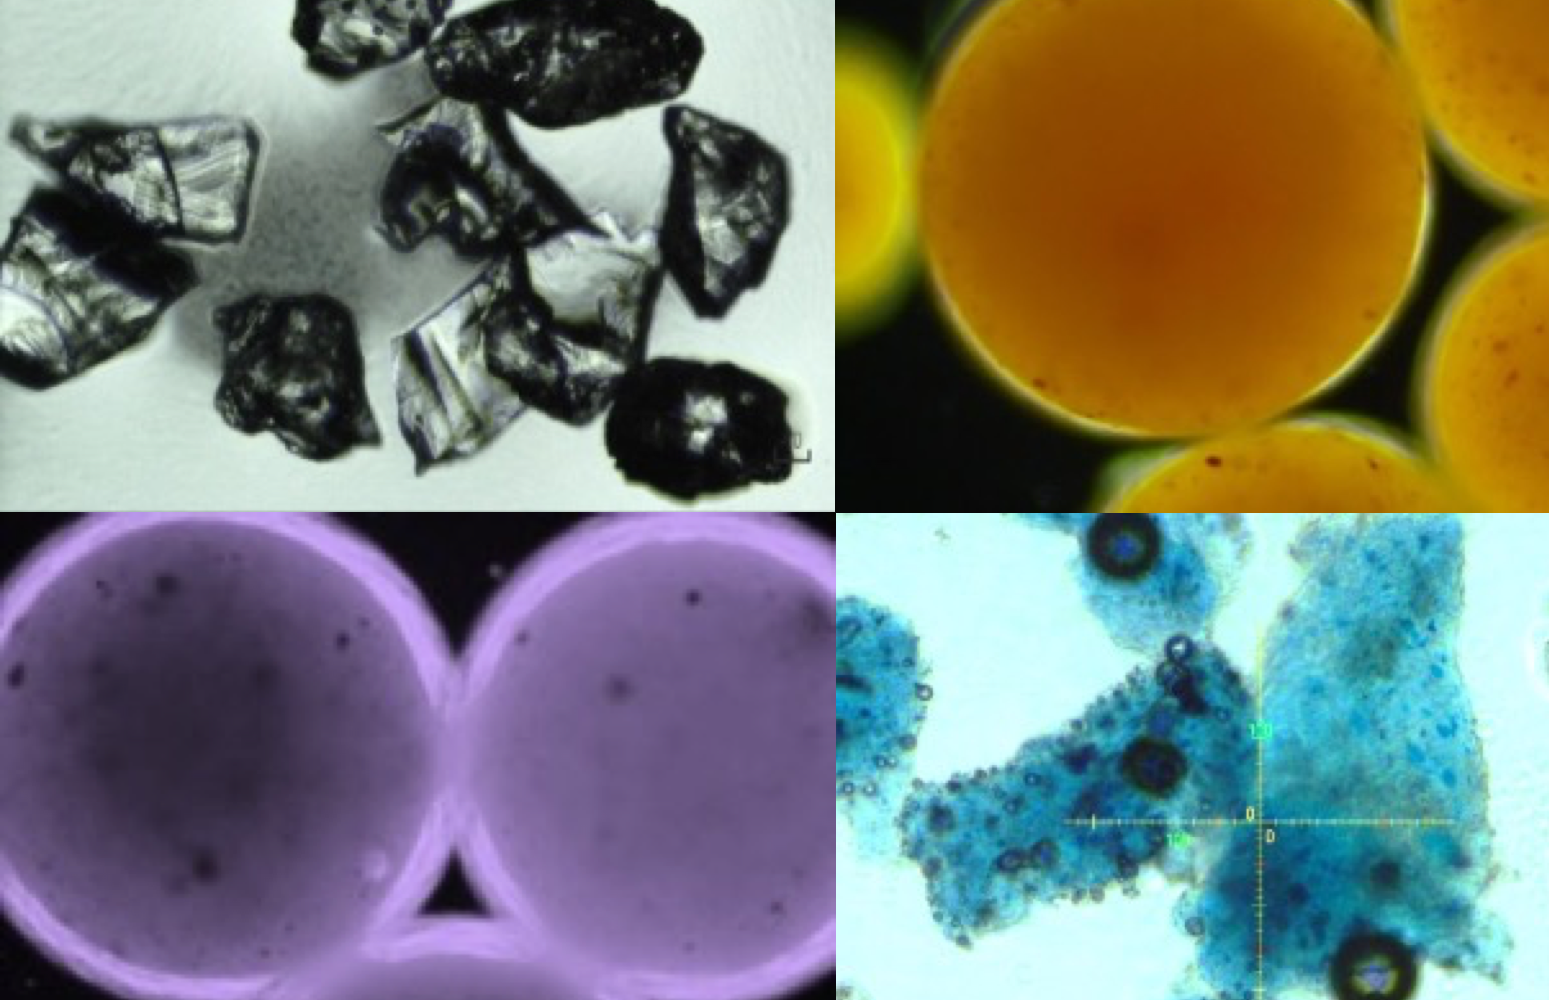 Microplastic debris in cosmetics under optical microscopy. Photo Credit: Dr. Xiaoguang Duan